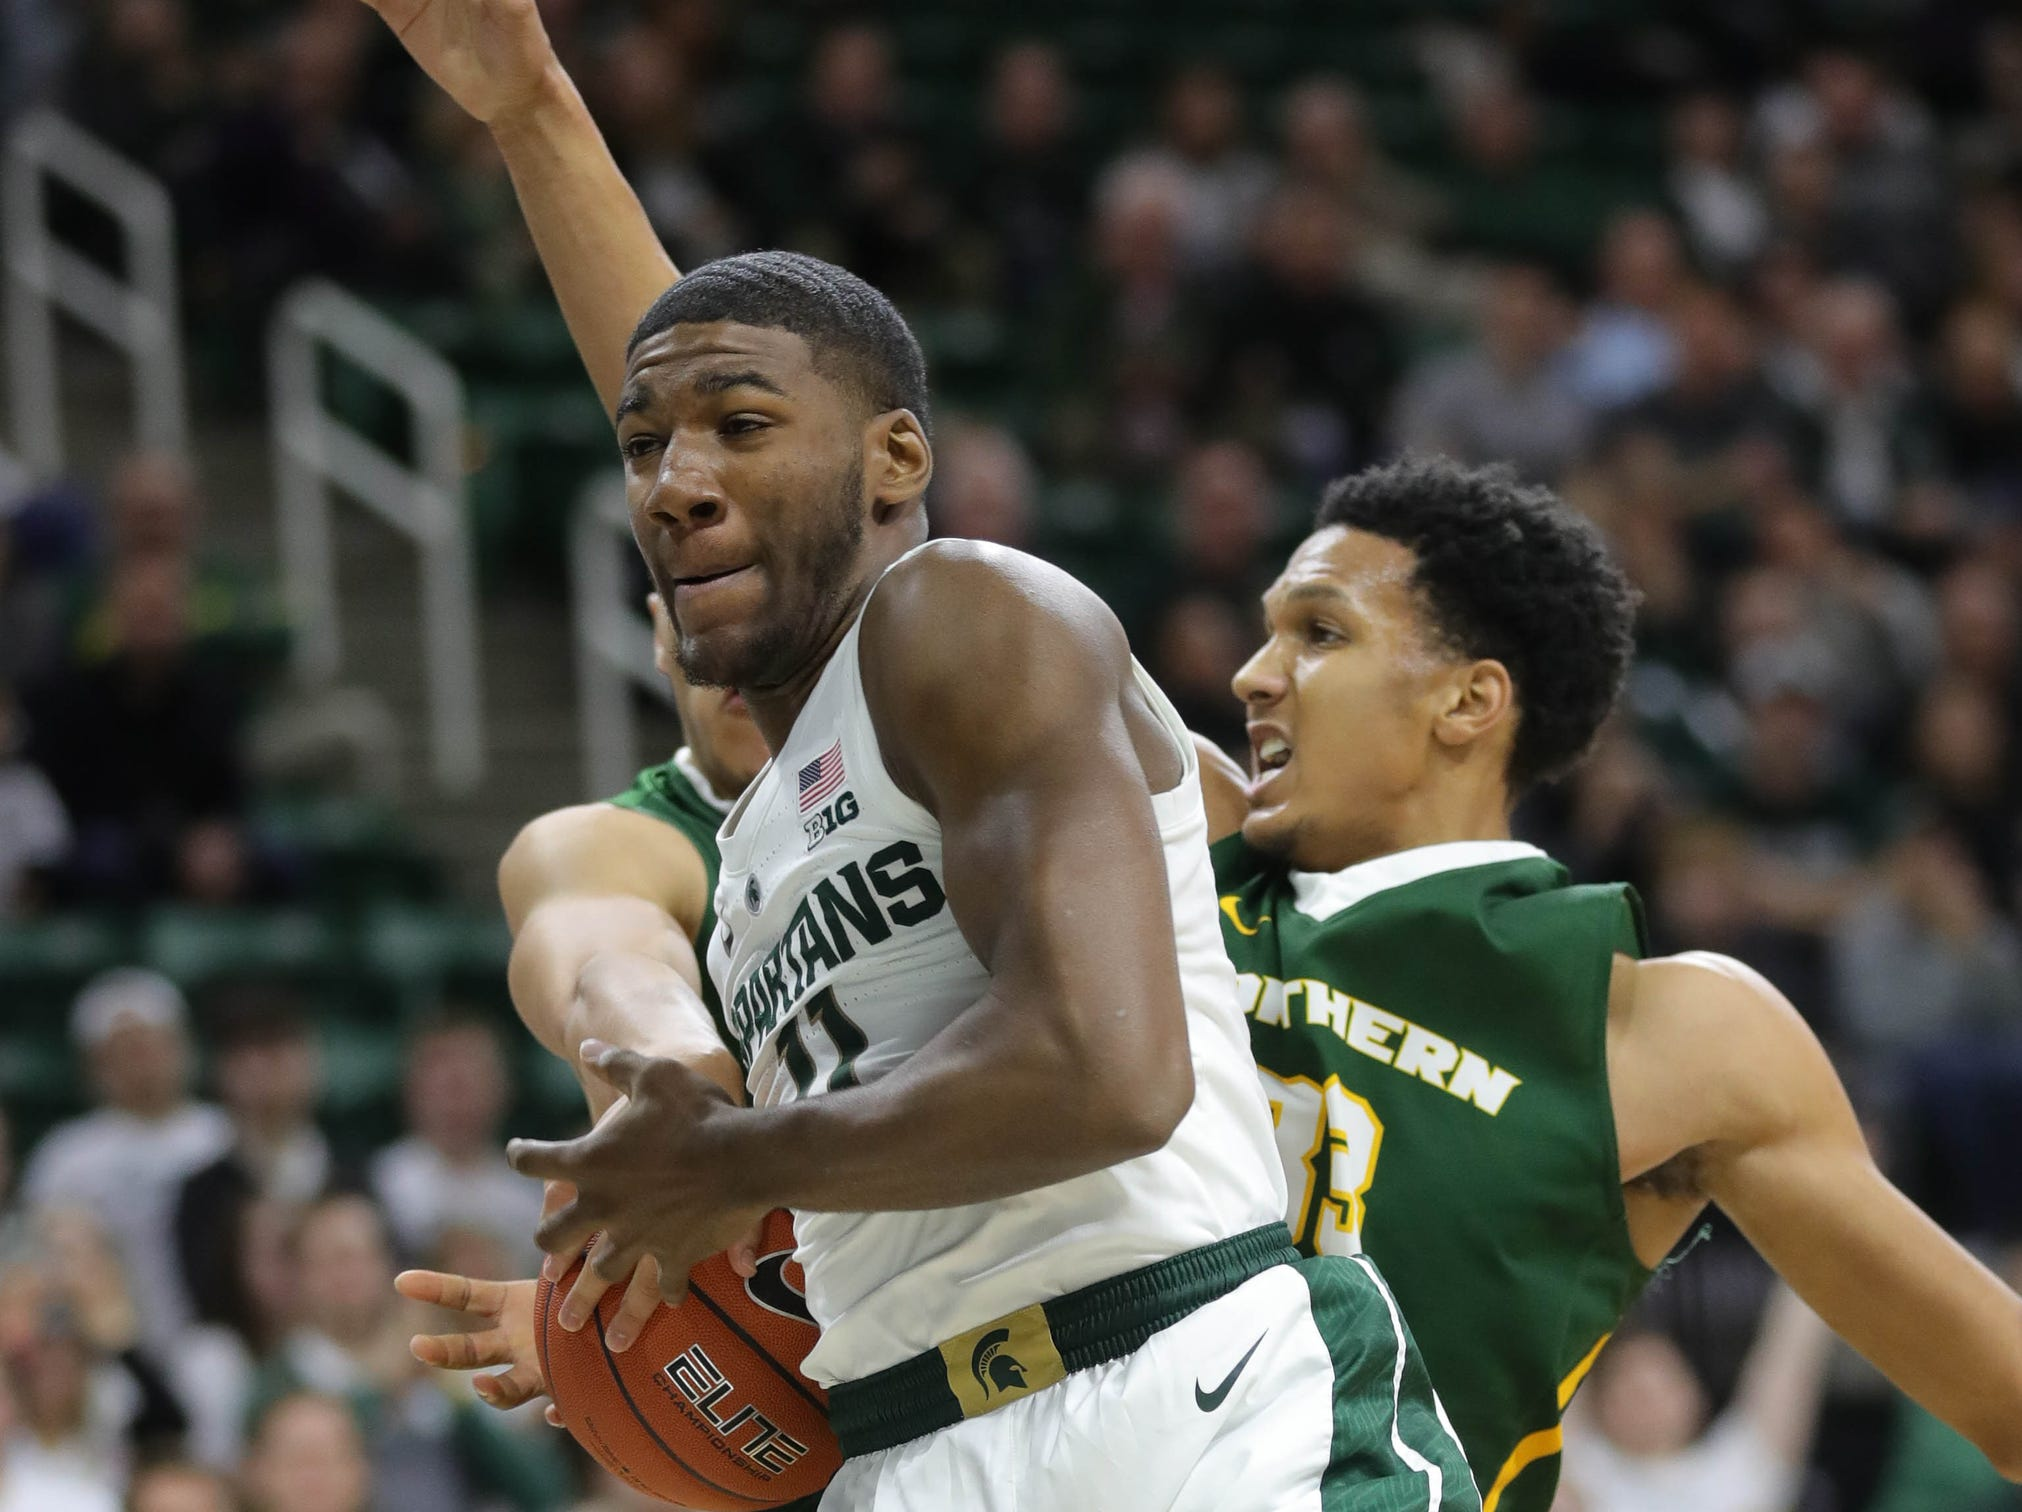 Michigan State forward Aaron Henry rebounds against Northern Michigan center Miles Howard during first half action Tuesday, October 30, 2018 at the Breslin Center in East Lansing, Mich.